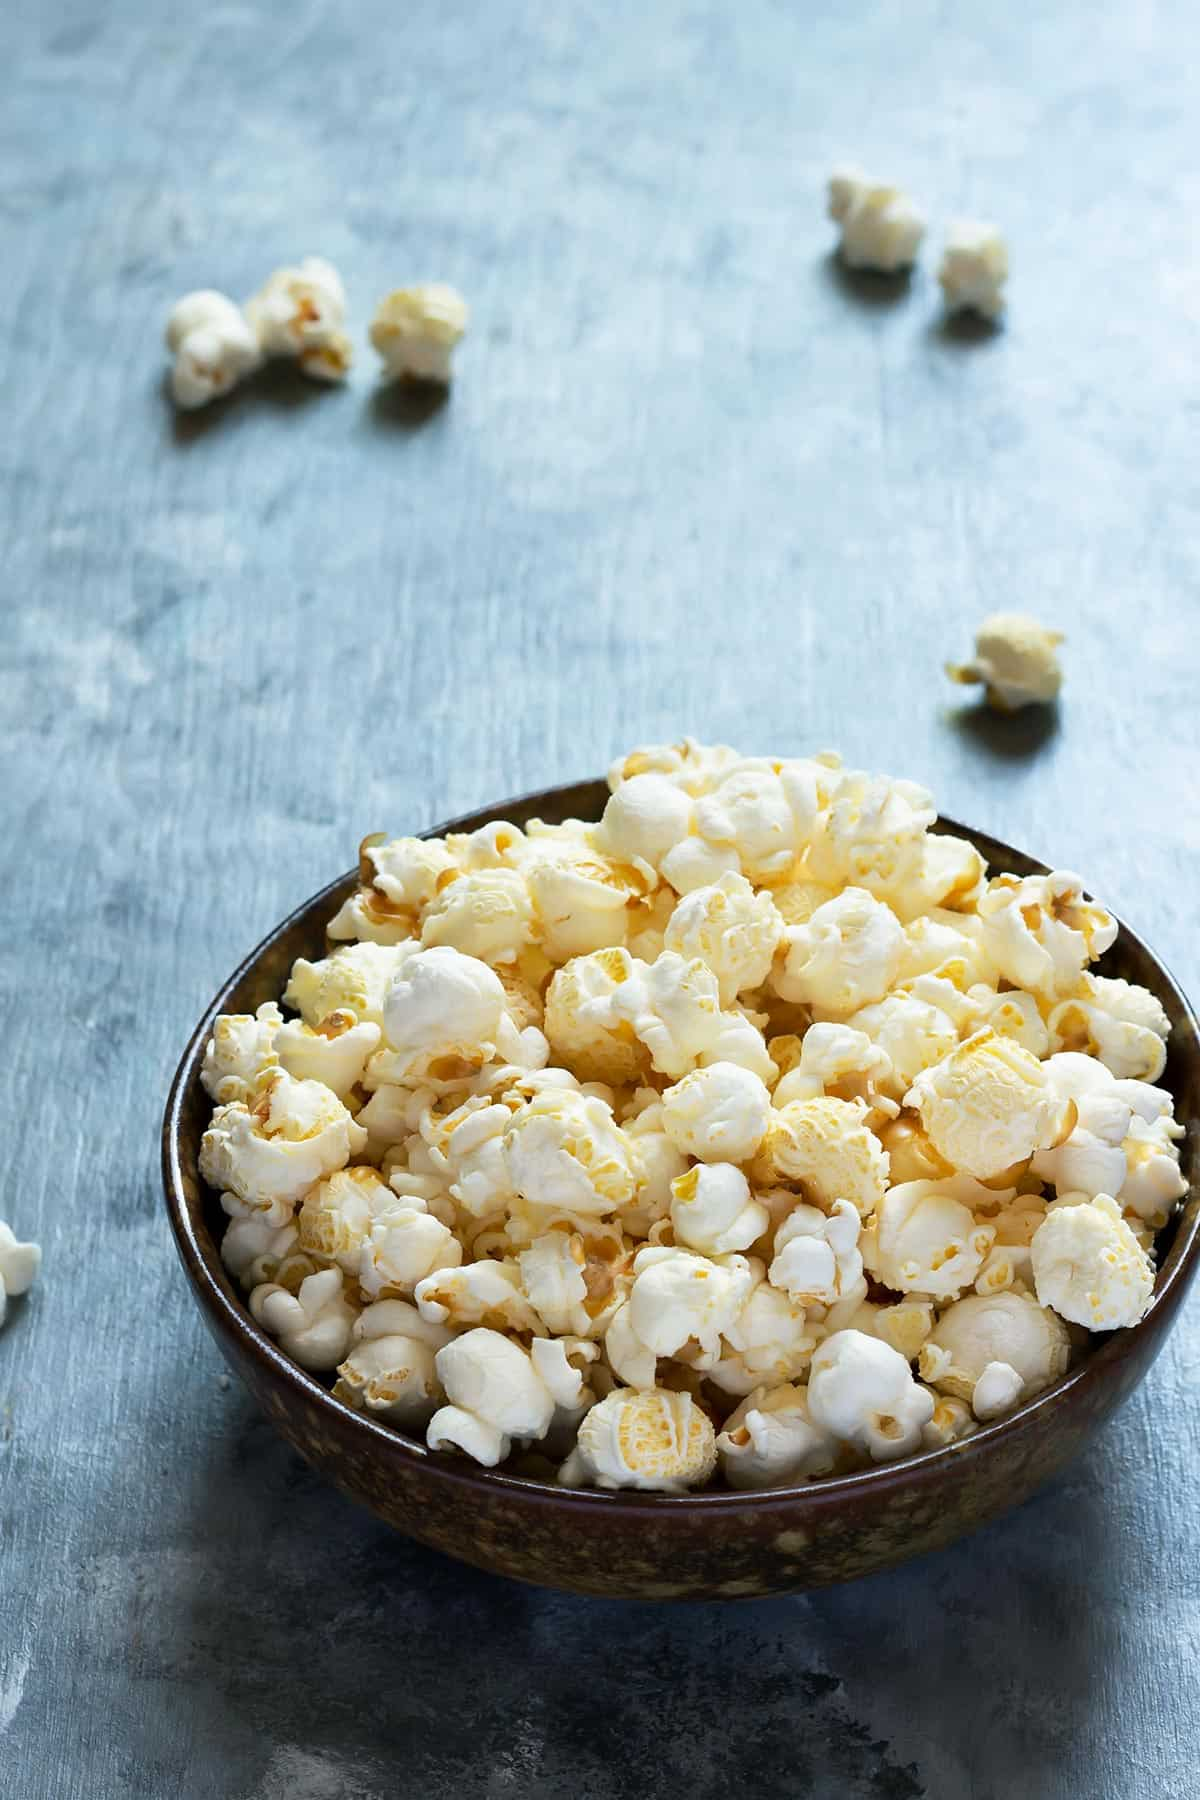 Bowl of Freshly Popped Popcorn